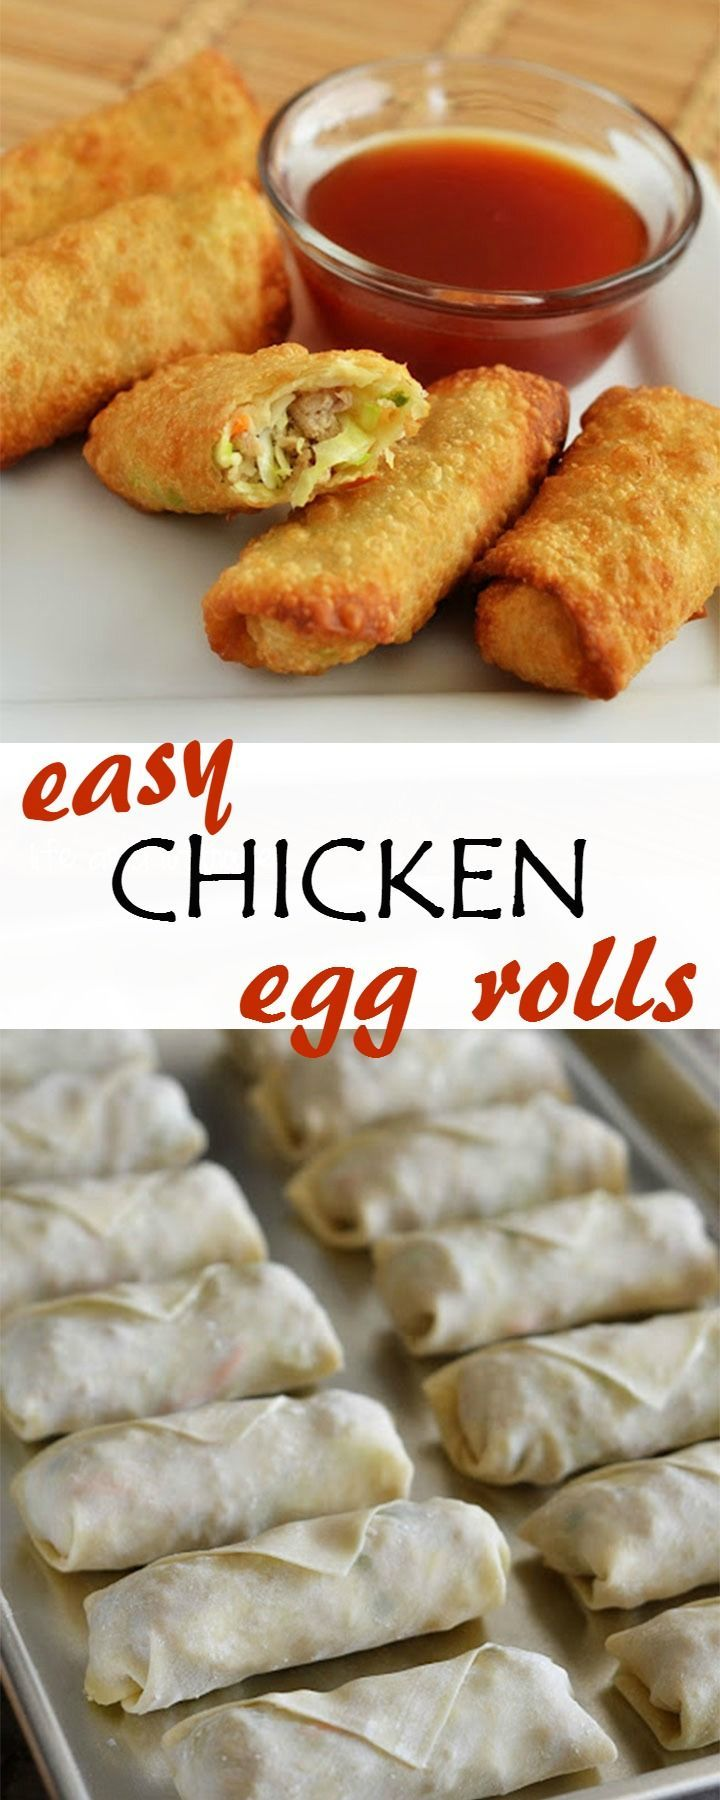 Chicken egg rolls recipe closest friends chinese food recipes homemade chinese food forumfinder Choice Image